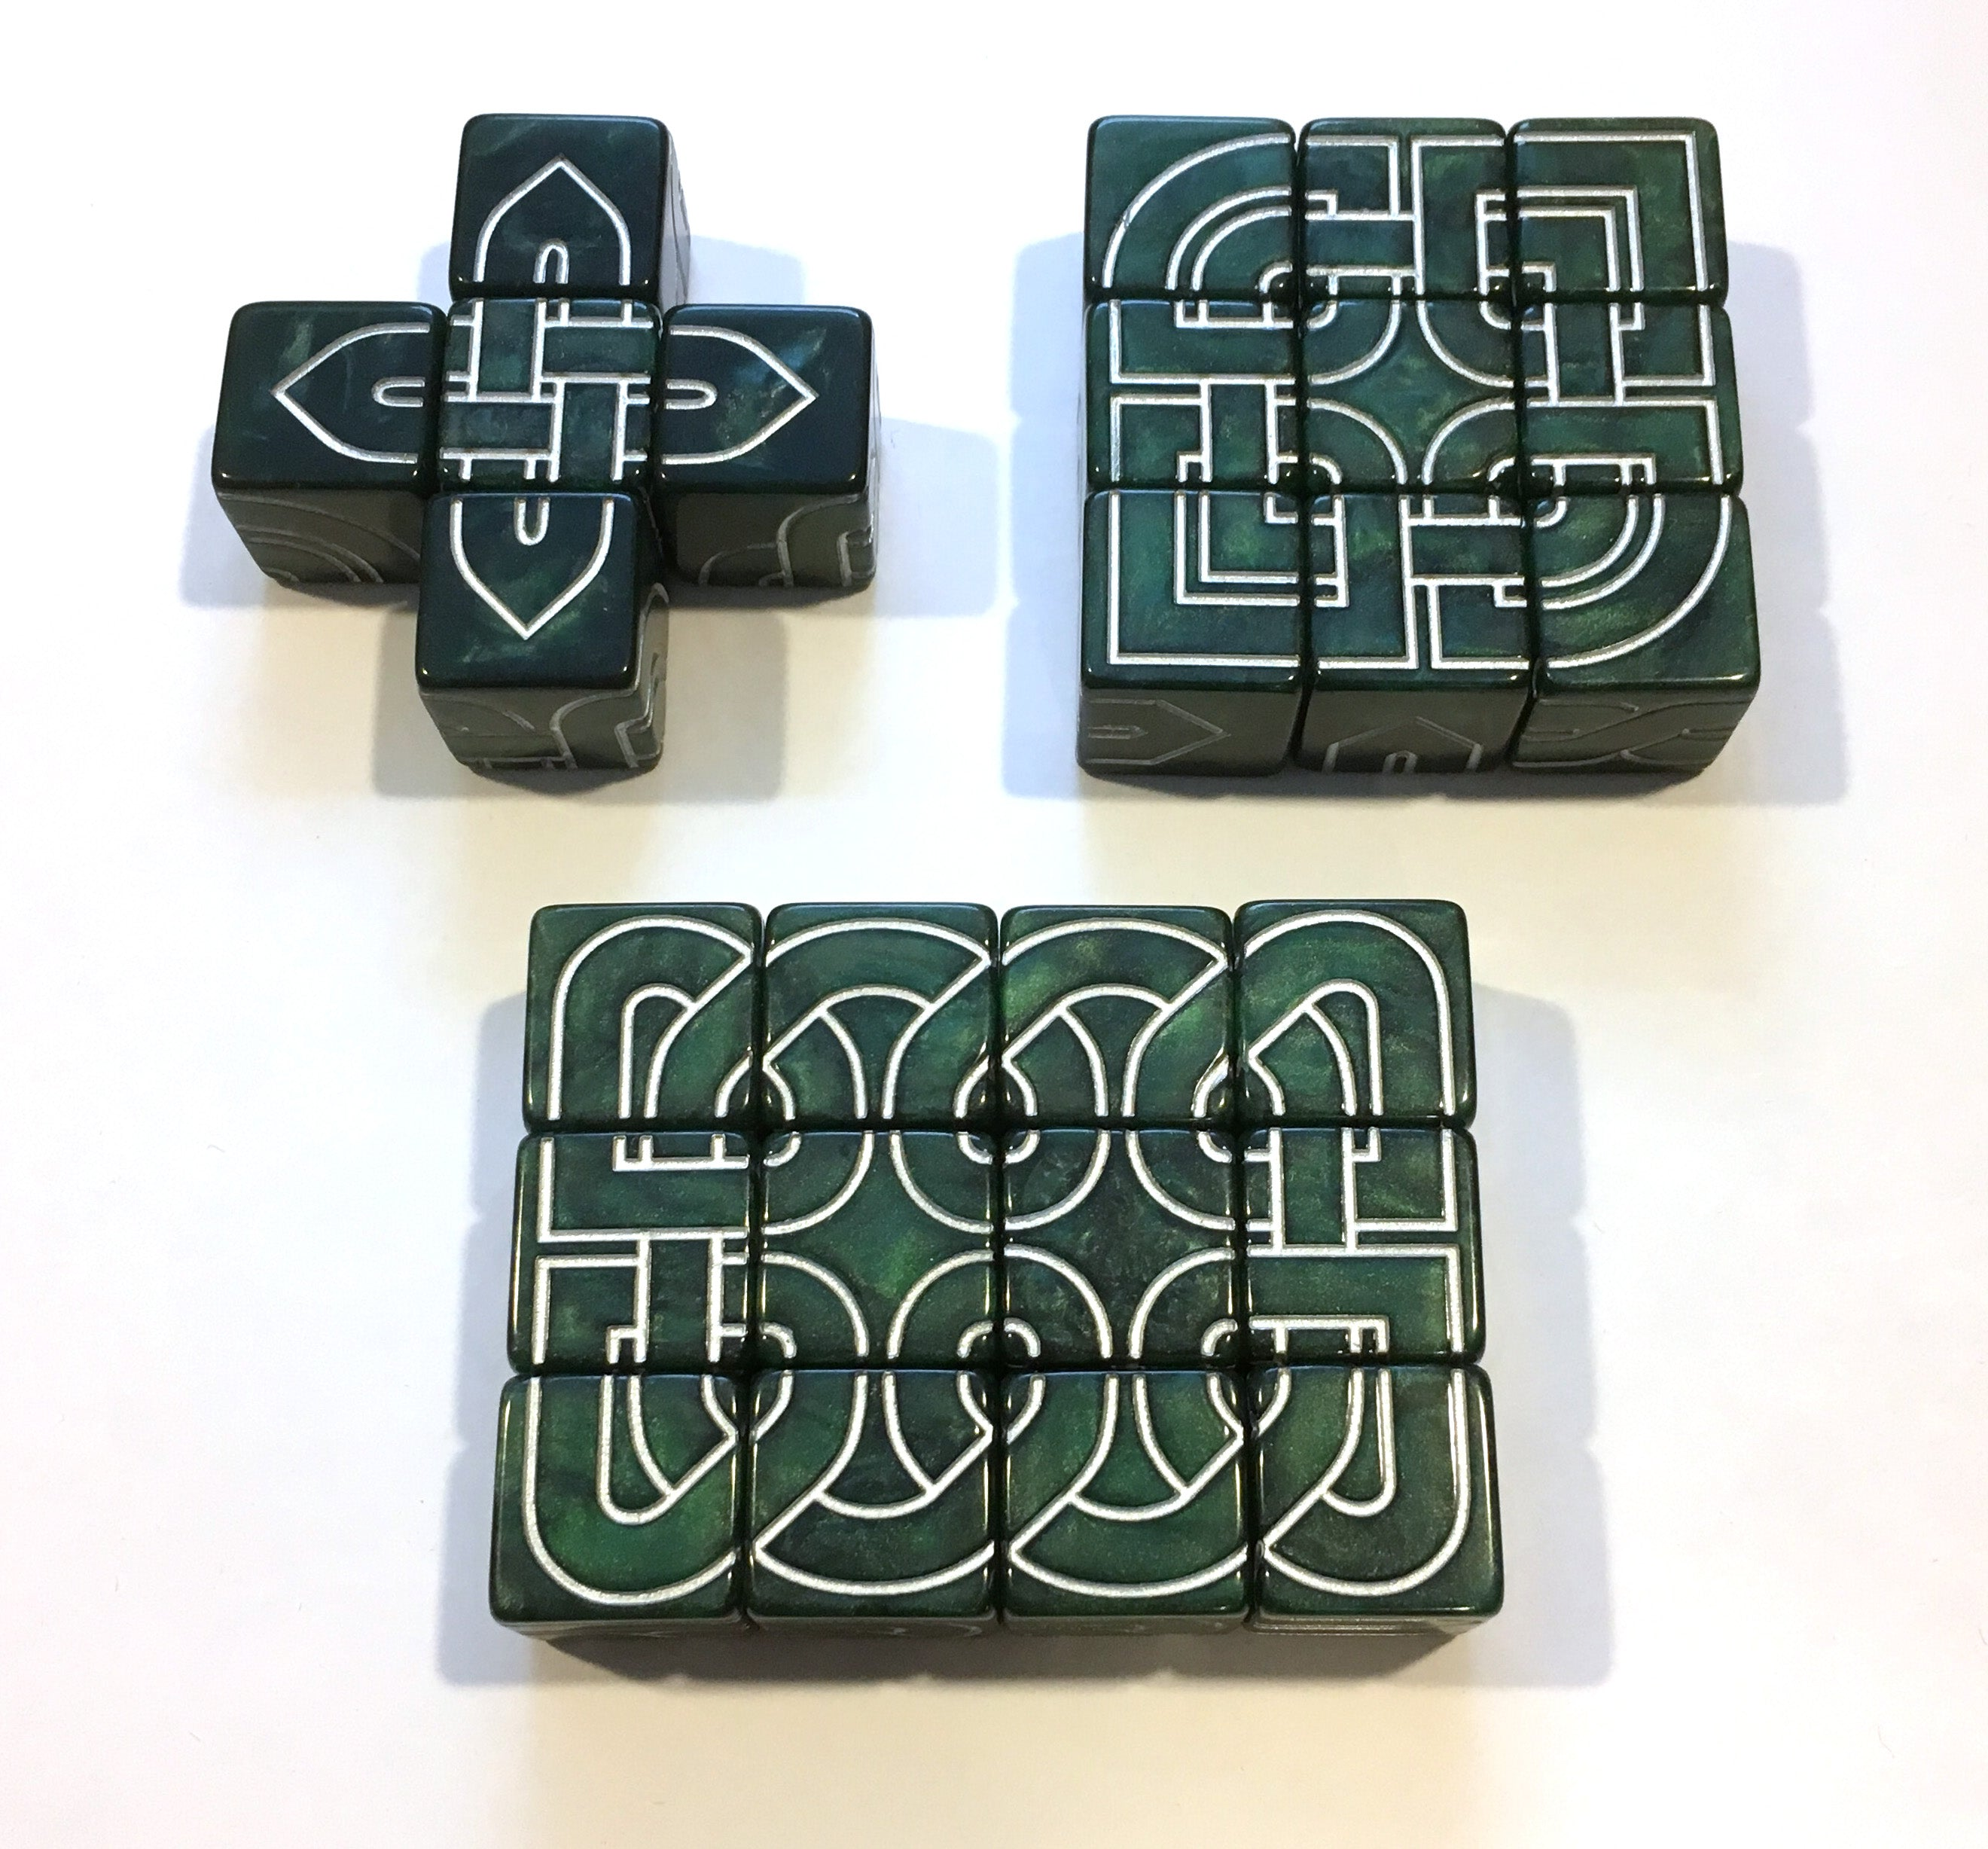 Knot Dice Squared (expansion) - DICE ONLY